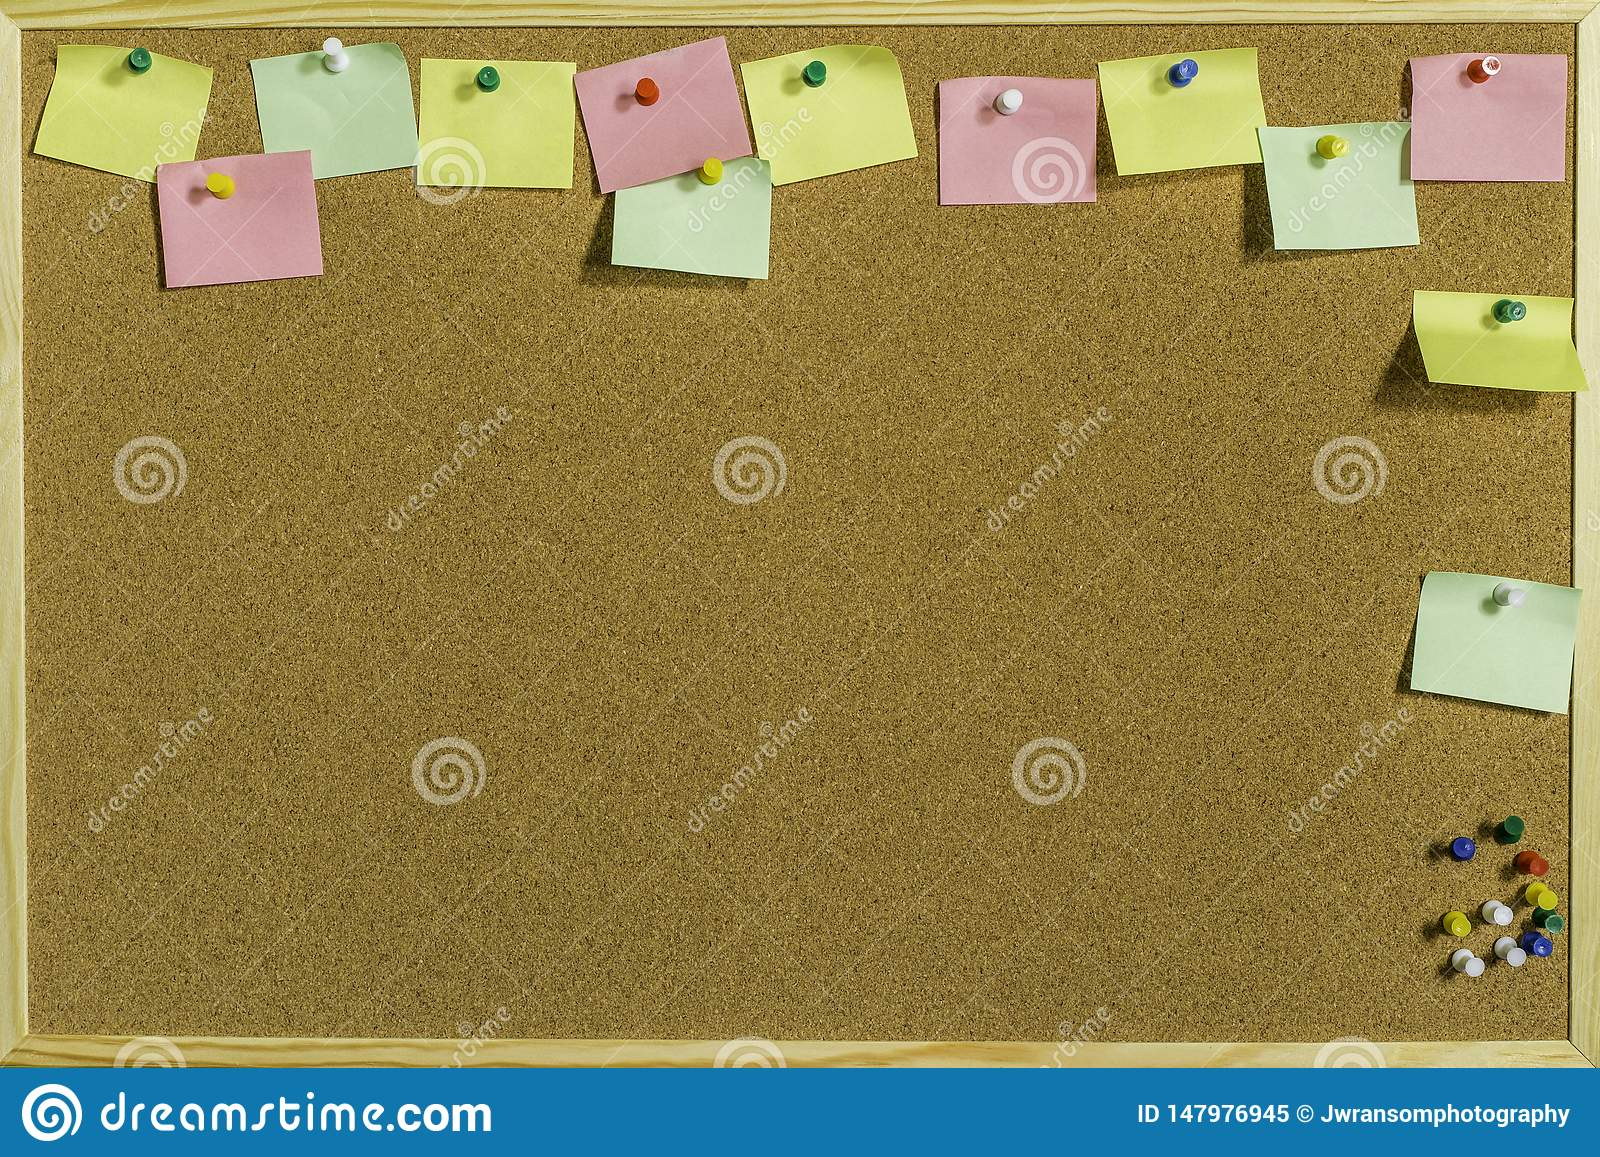 Pin Board With Space For colorido sus mensajes